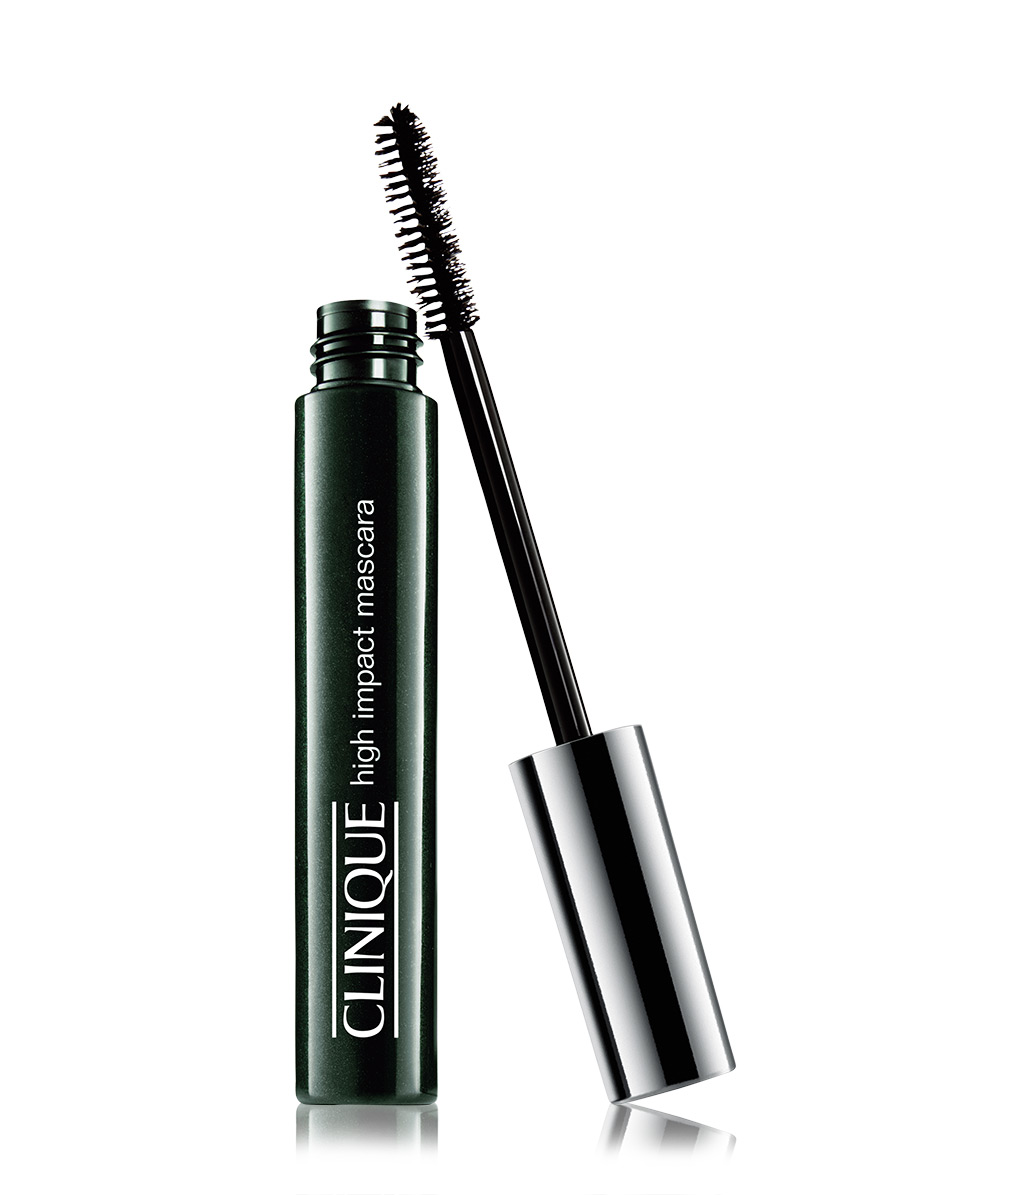 CLINIQUE HIGH IMPACT MASCARA VOLUMIZZANTE FISSANTE 02 BLACK BROWN